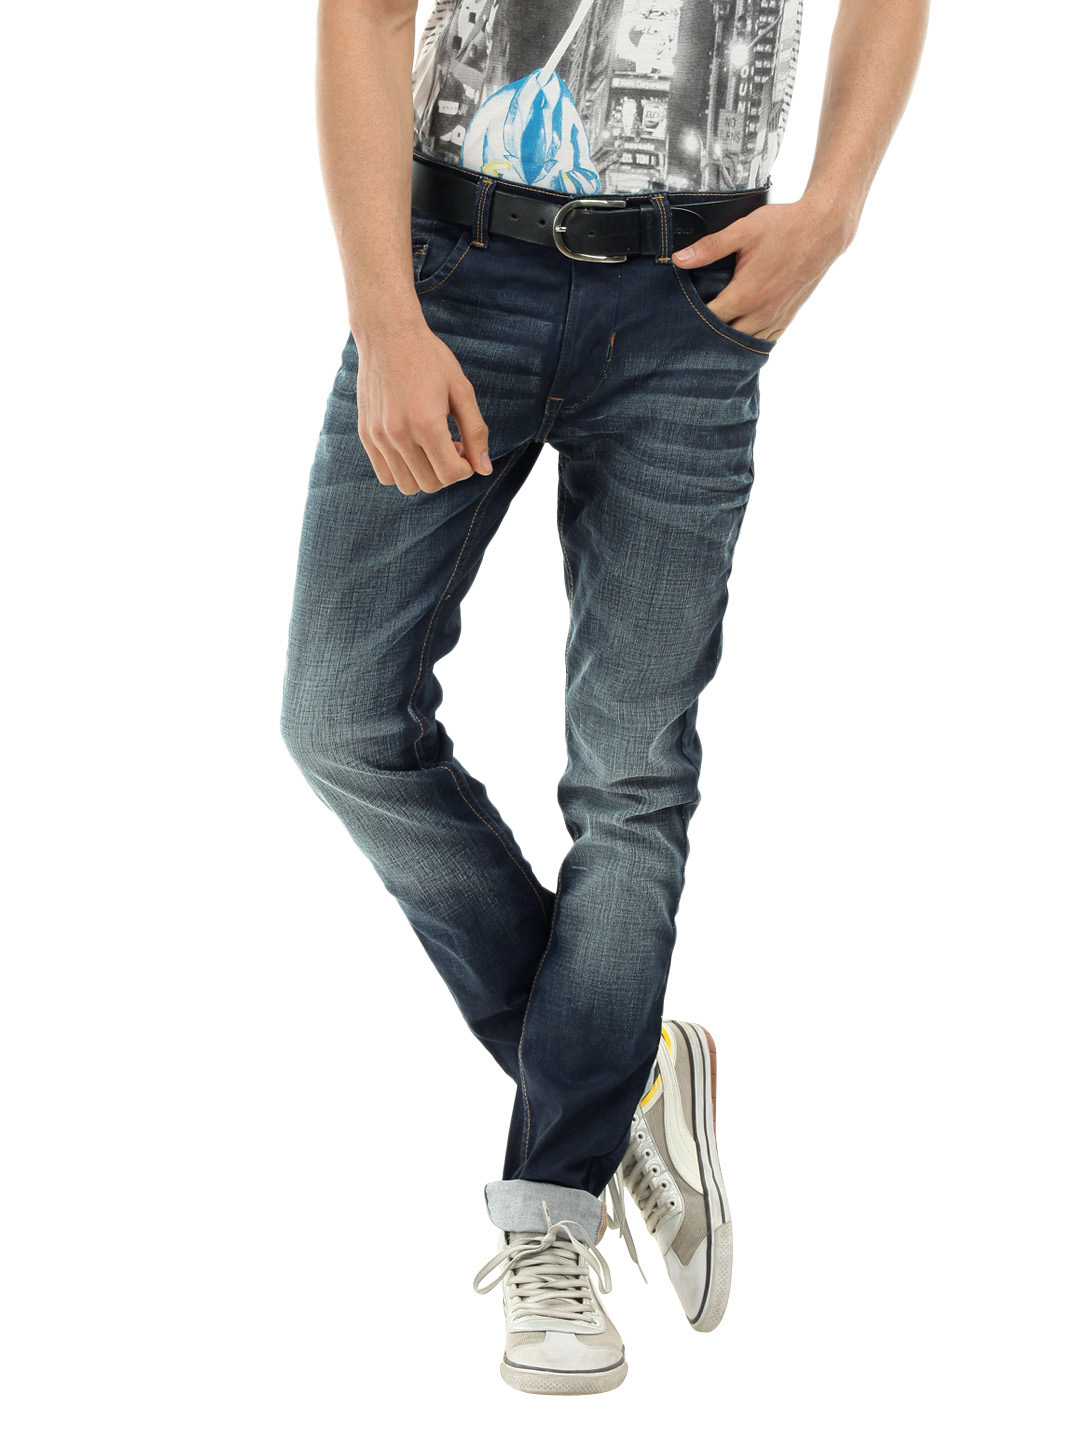 more jeans from mossimo all products from mossimo